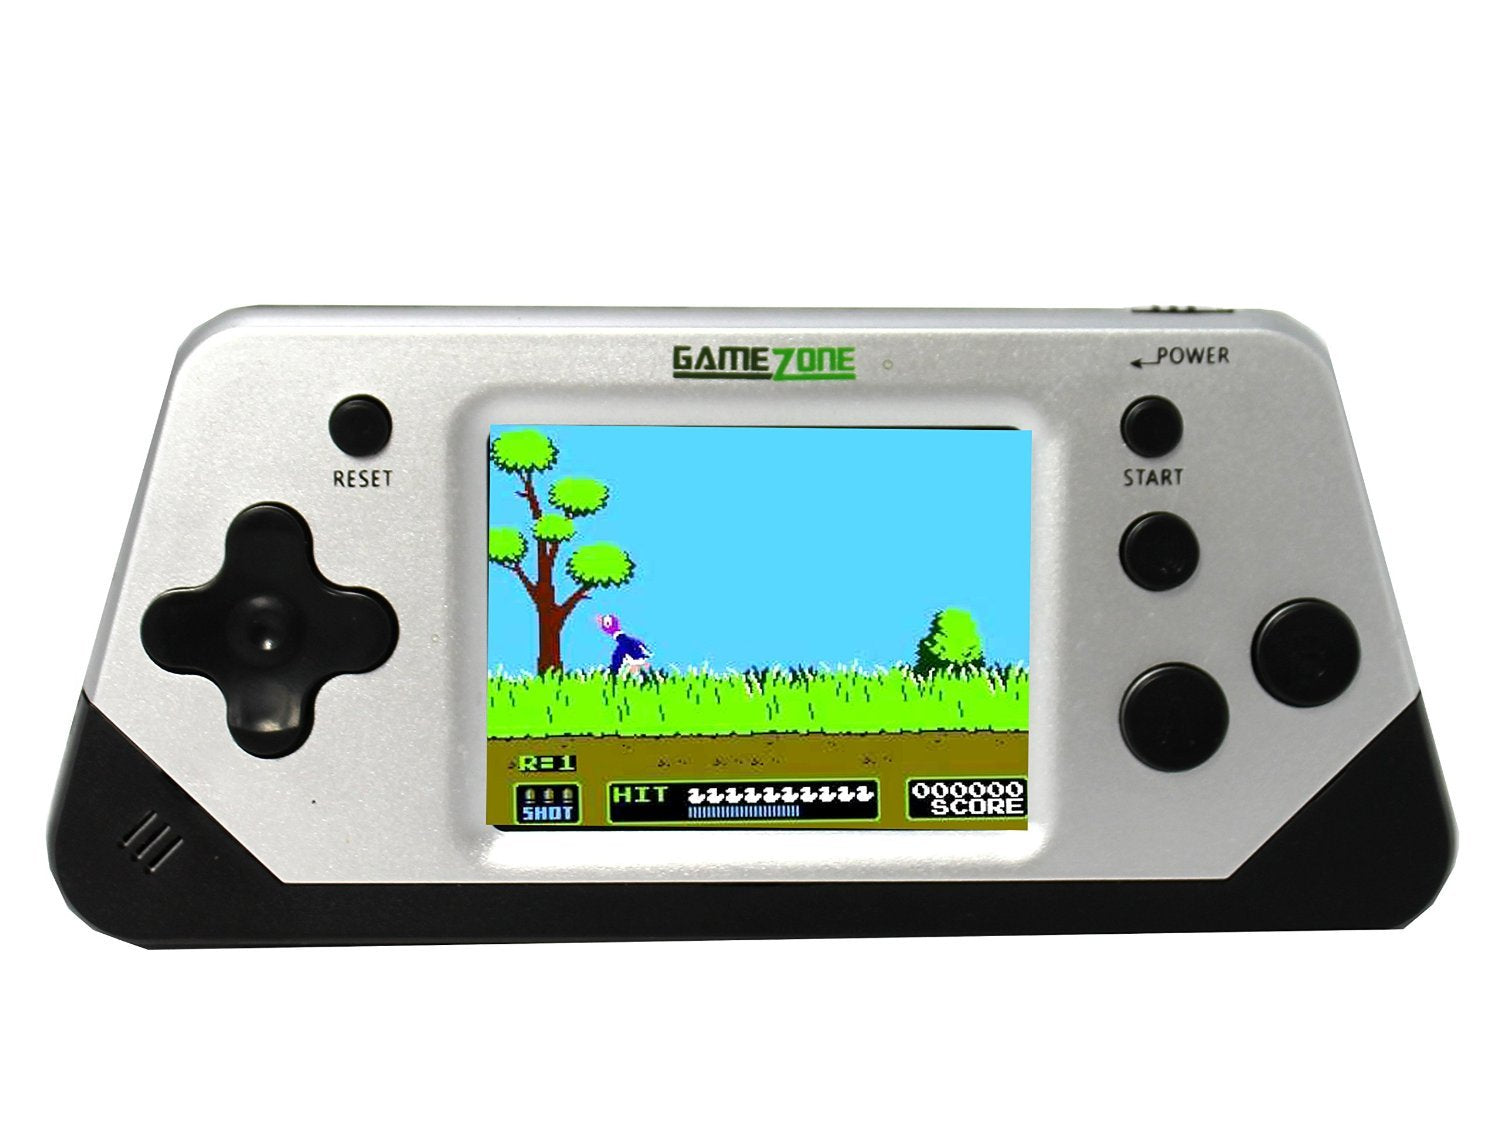 IQ Toys Game-Zone 240 Games in 1 Portable Game Console